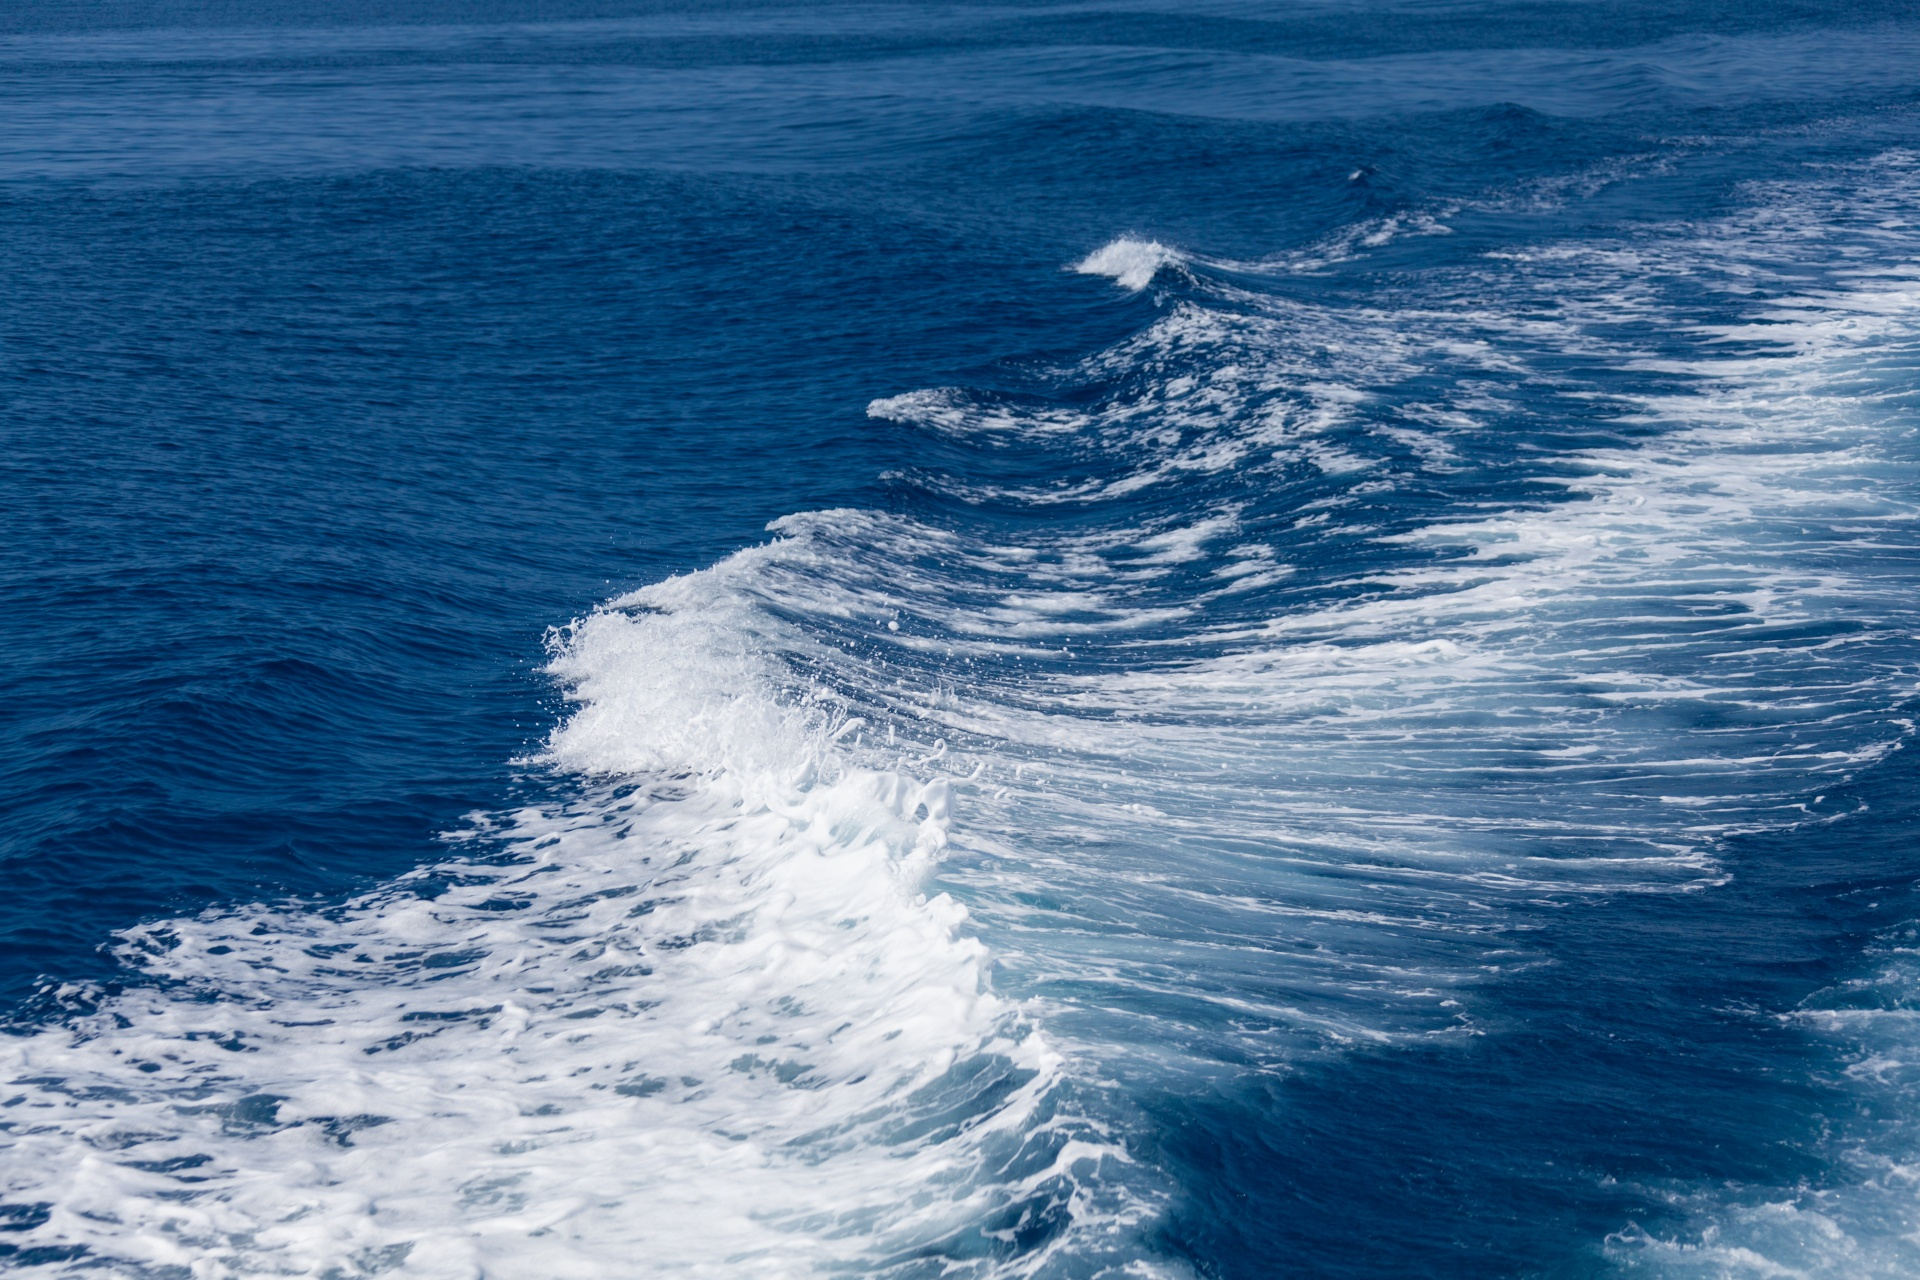 Sea Waves Free Stock Photo - Public Domain Pictures